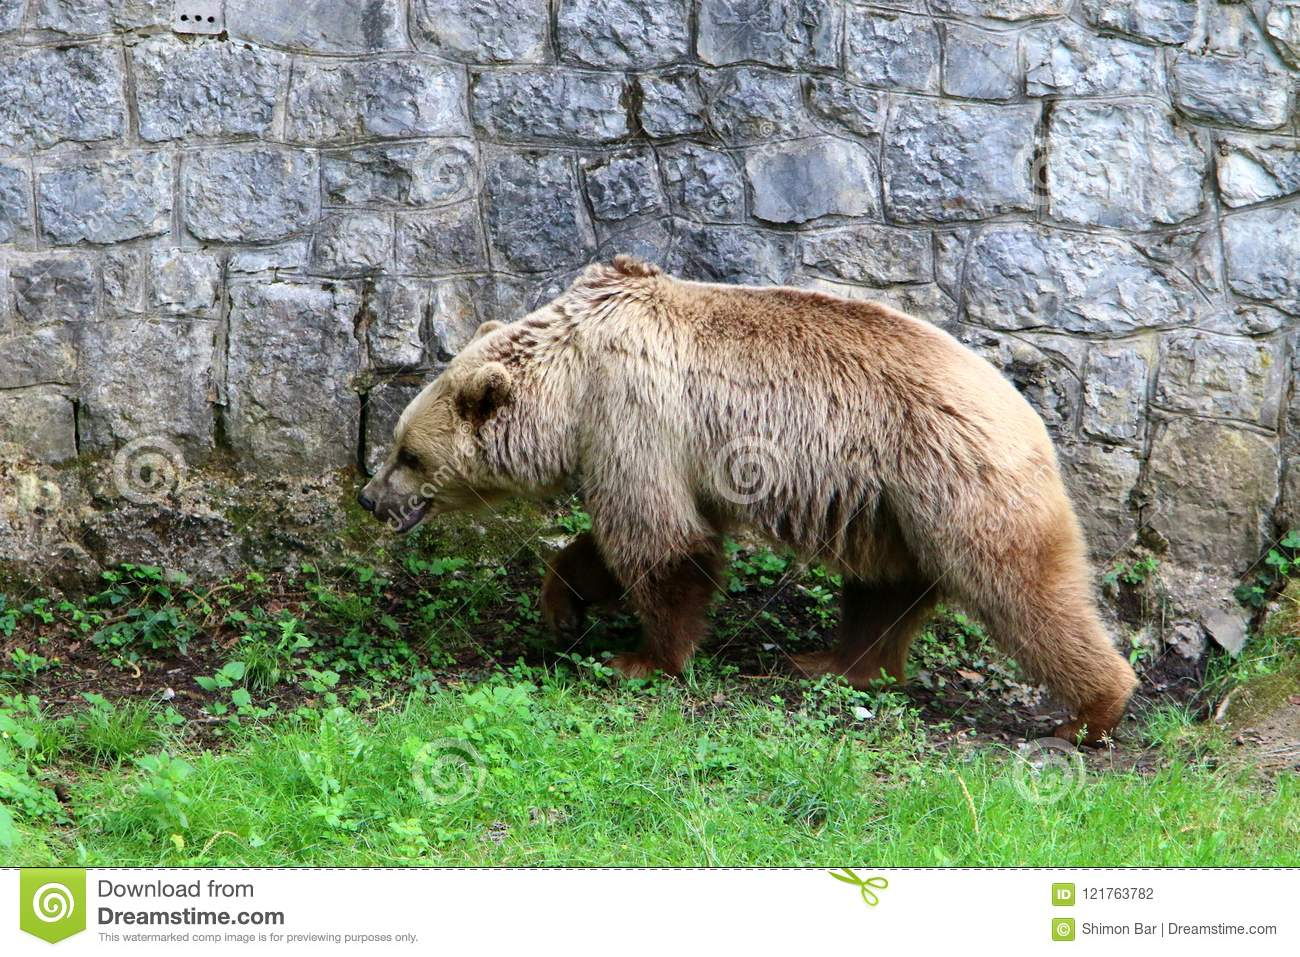 Bear lives in the zoo stock photo. Image of summer, branch - 121763782